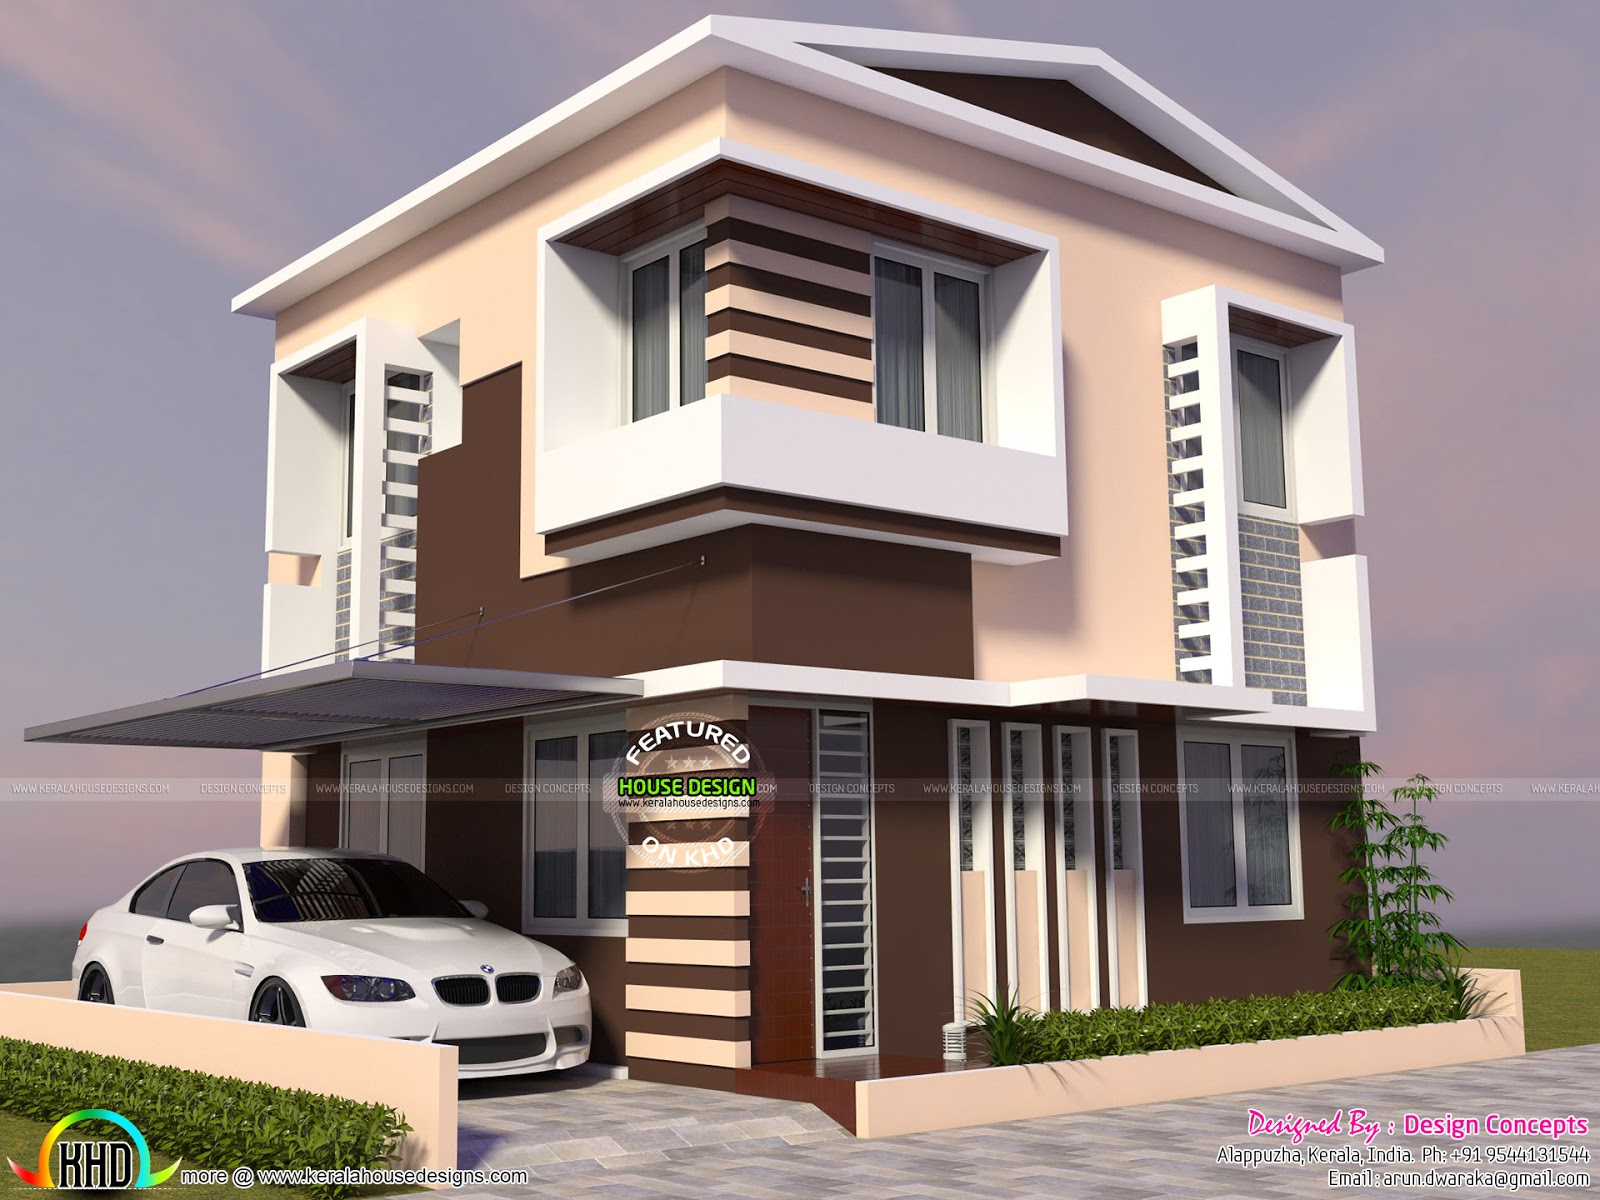 Ground Floor : 480 Sq. Ft. Total Area : 960 Sq. Ft. Plot Area : 2  Cents(80.96m2) Bedrooms : 3. Attached Bathrooms : 3. Design Style : Modern  House